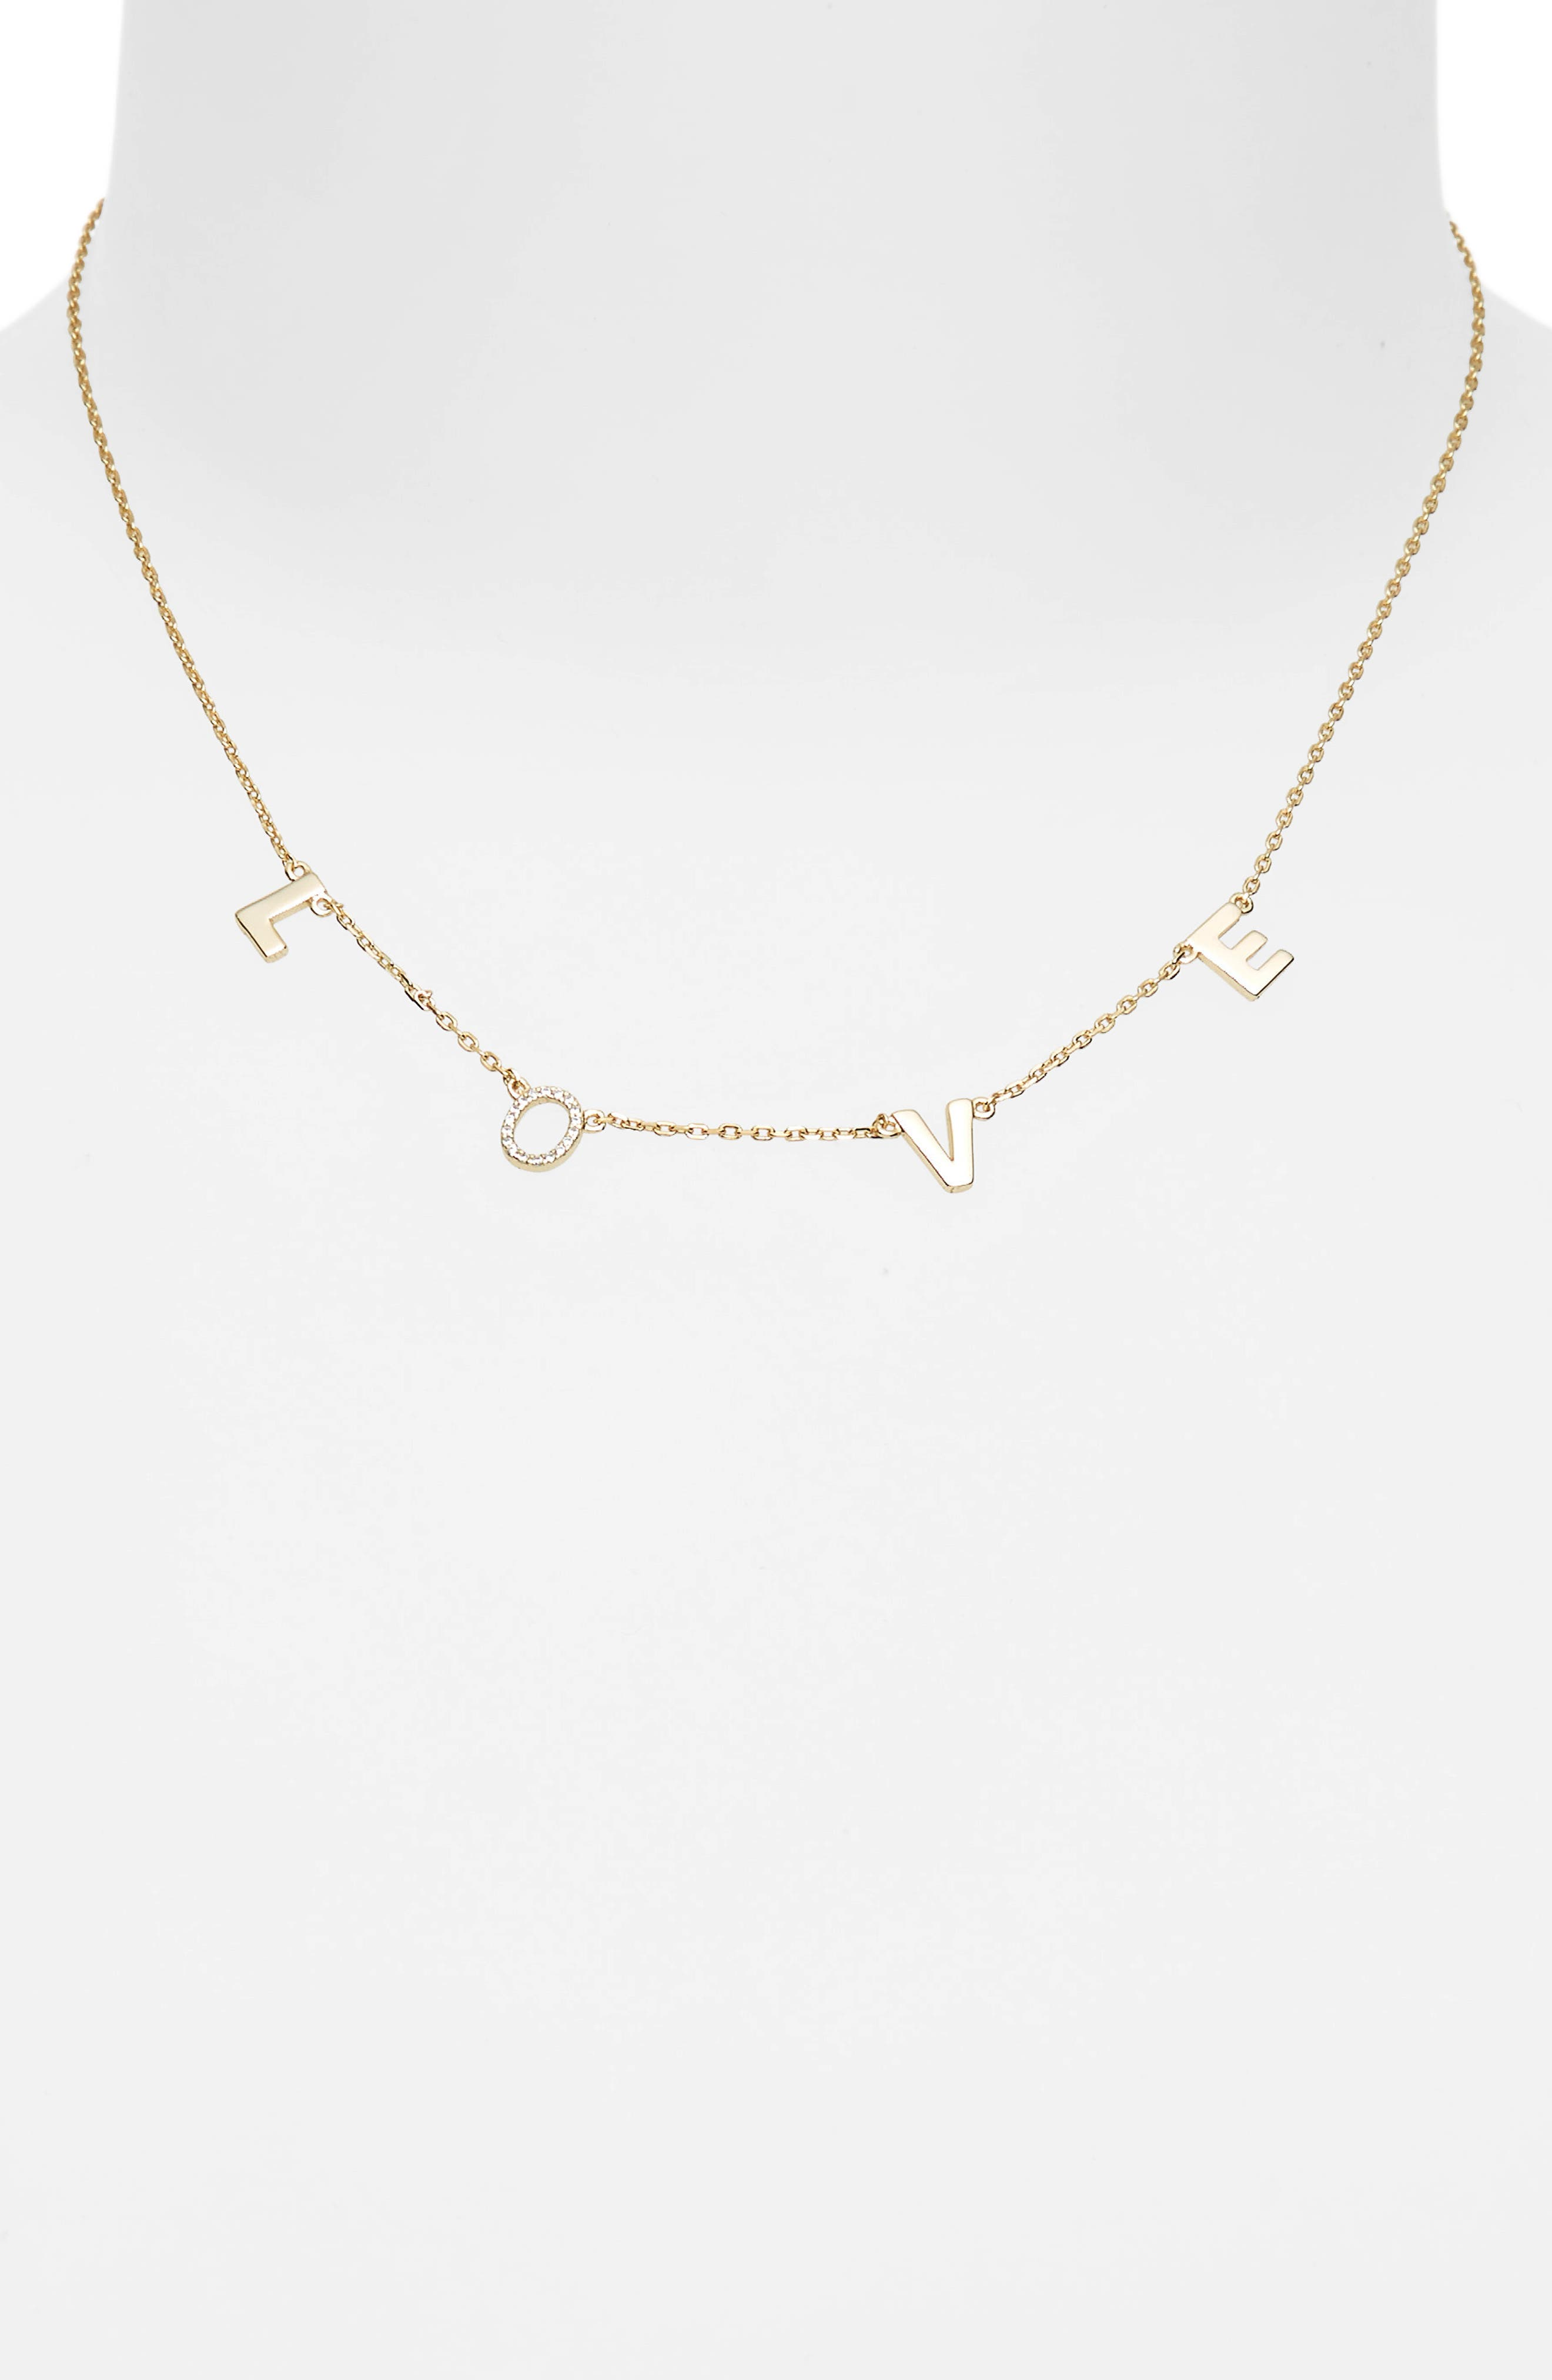 Crystal Love Necklace,                             Alternate thumbnail 2, color,                             Yellow Gold